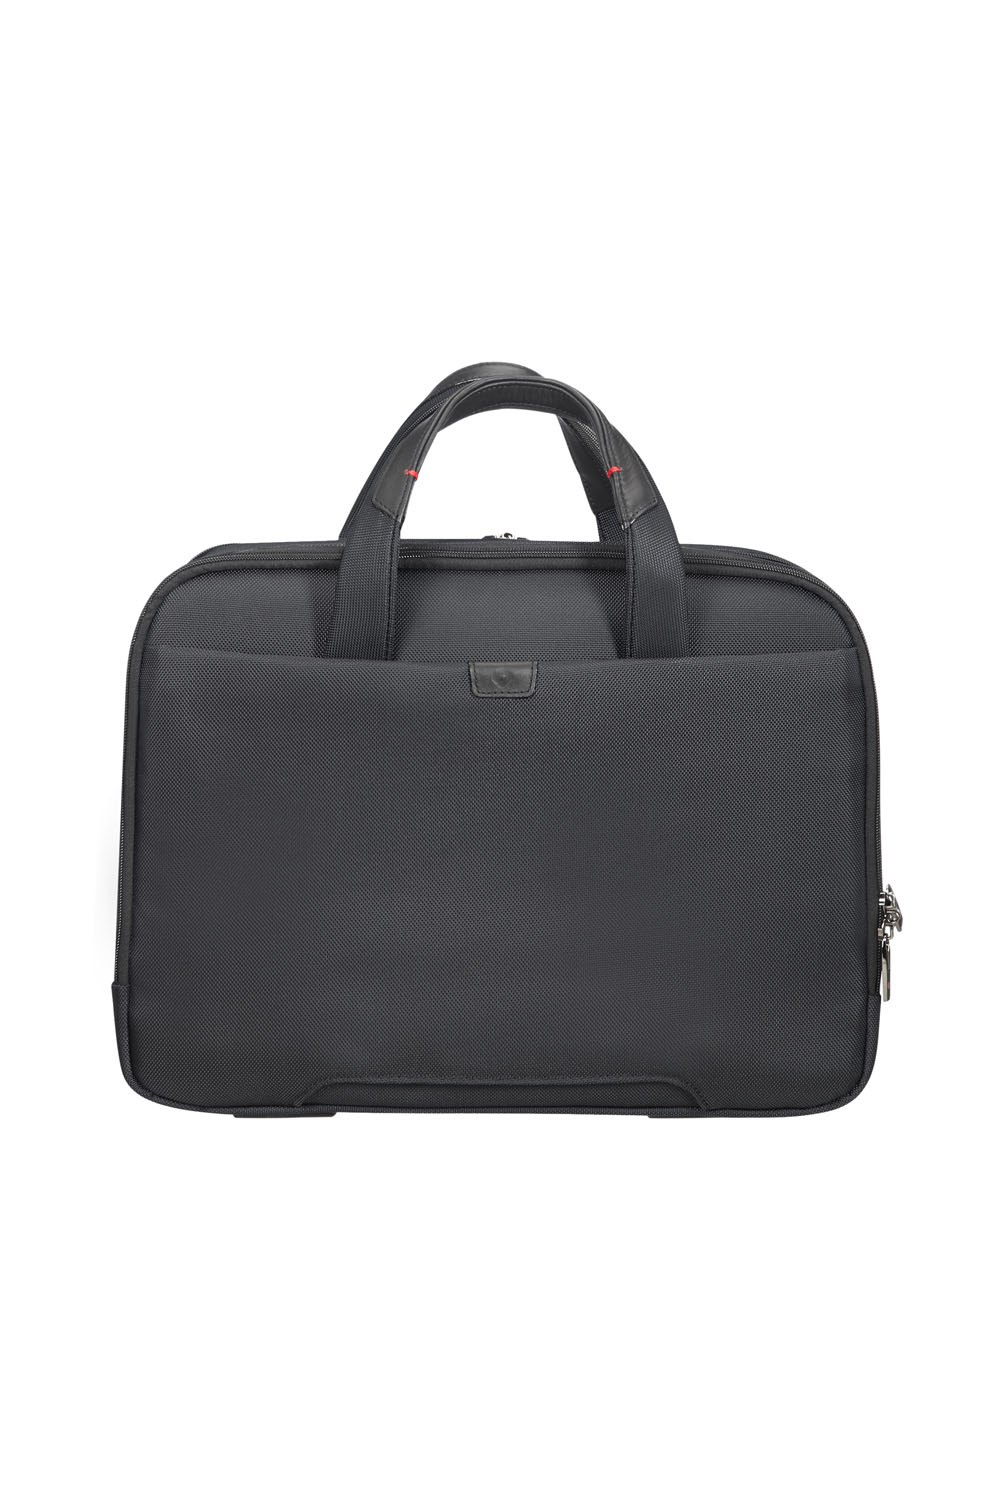 samsonite pro dlx 5 laptoptasche bailhandle 15 6. Black Bedroom Furniture Sets. Home Design Ideas